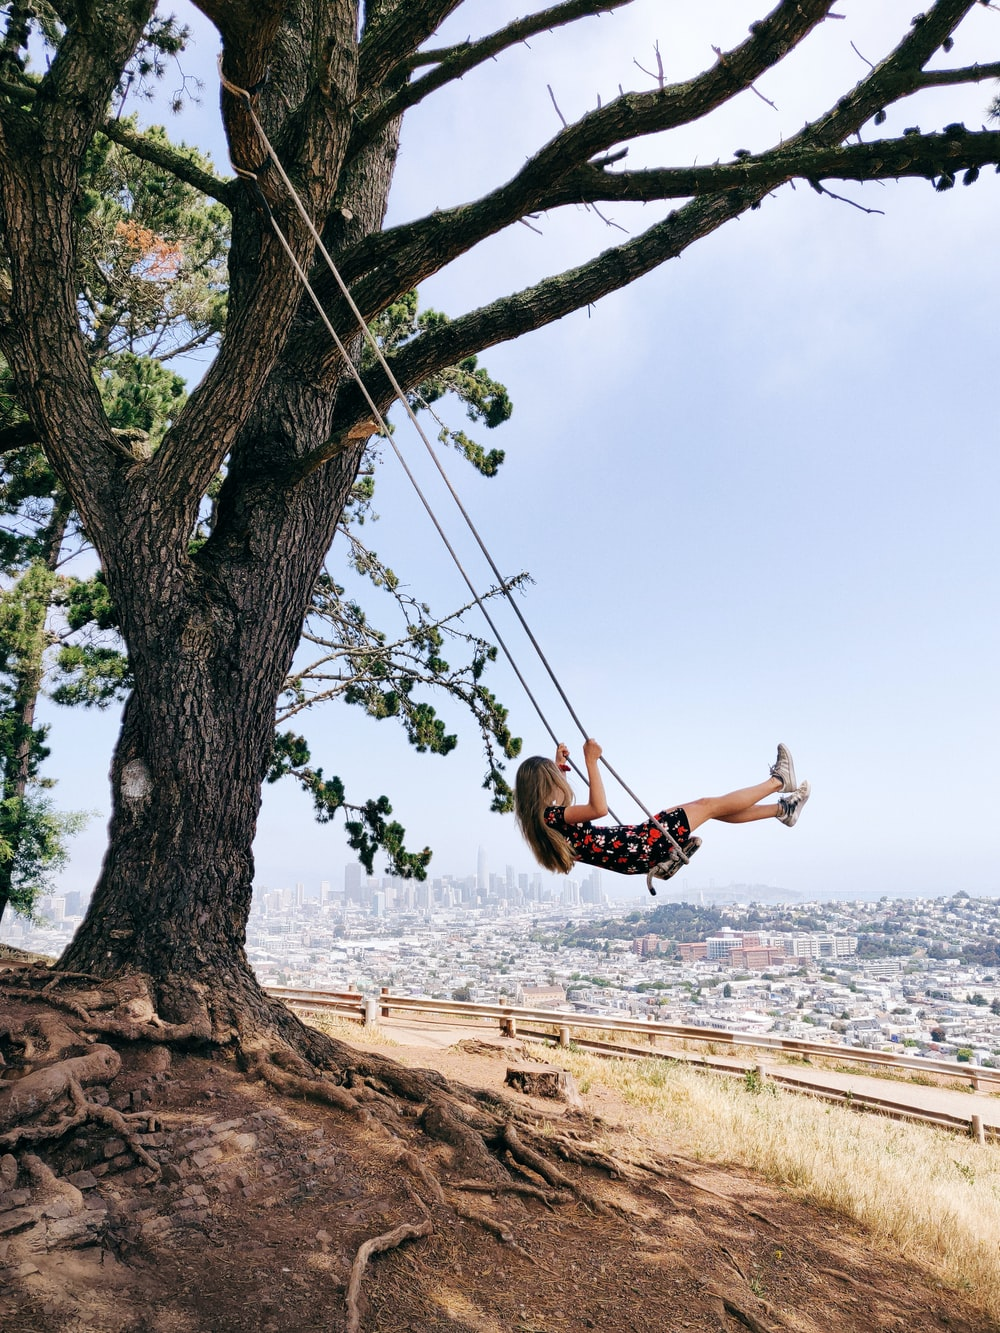 woman swinging on rope during daytime